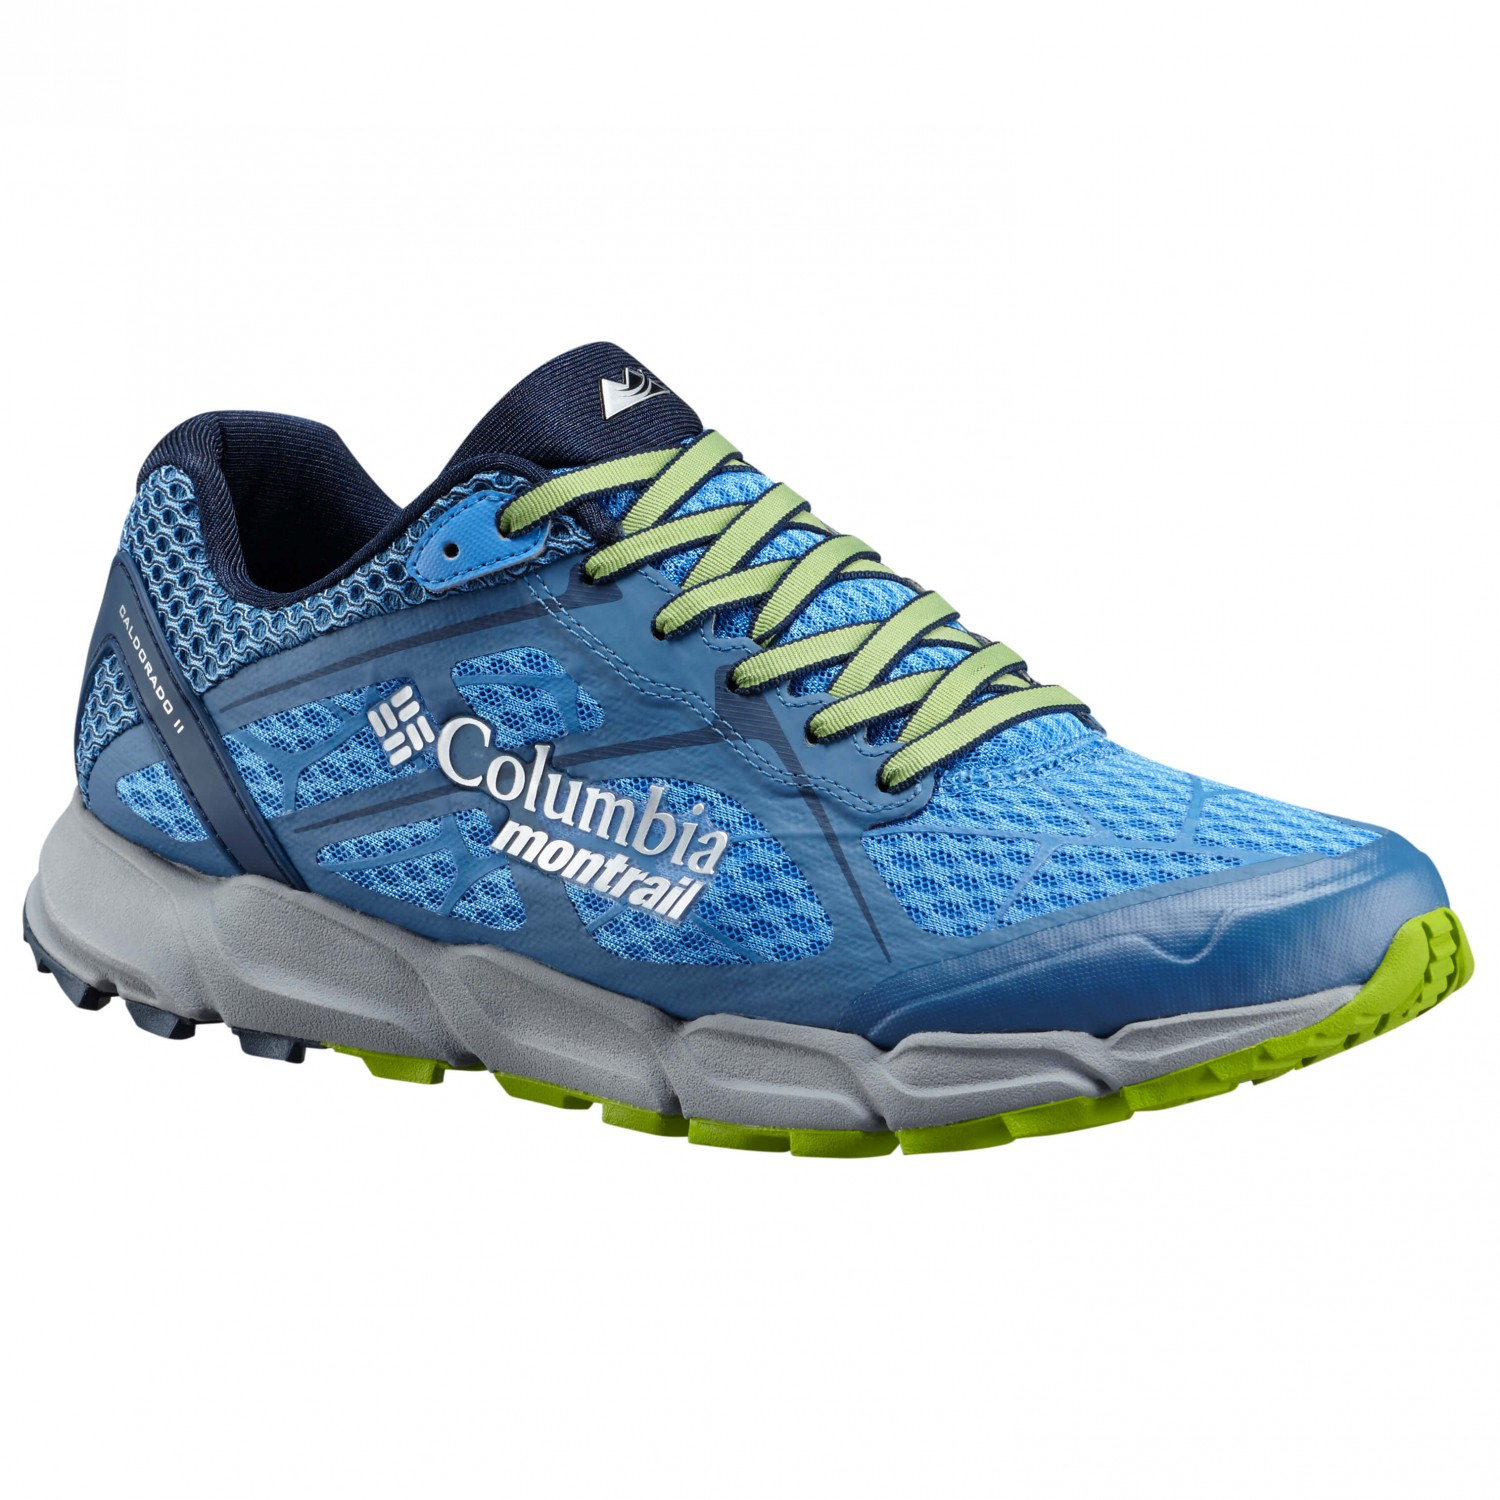 Columbia Running Shoes Canada